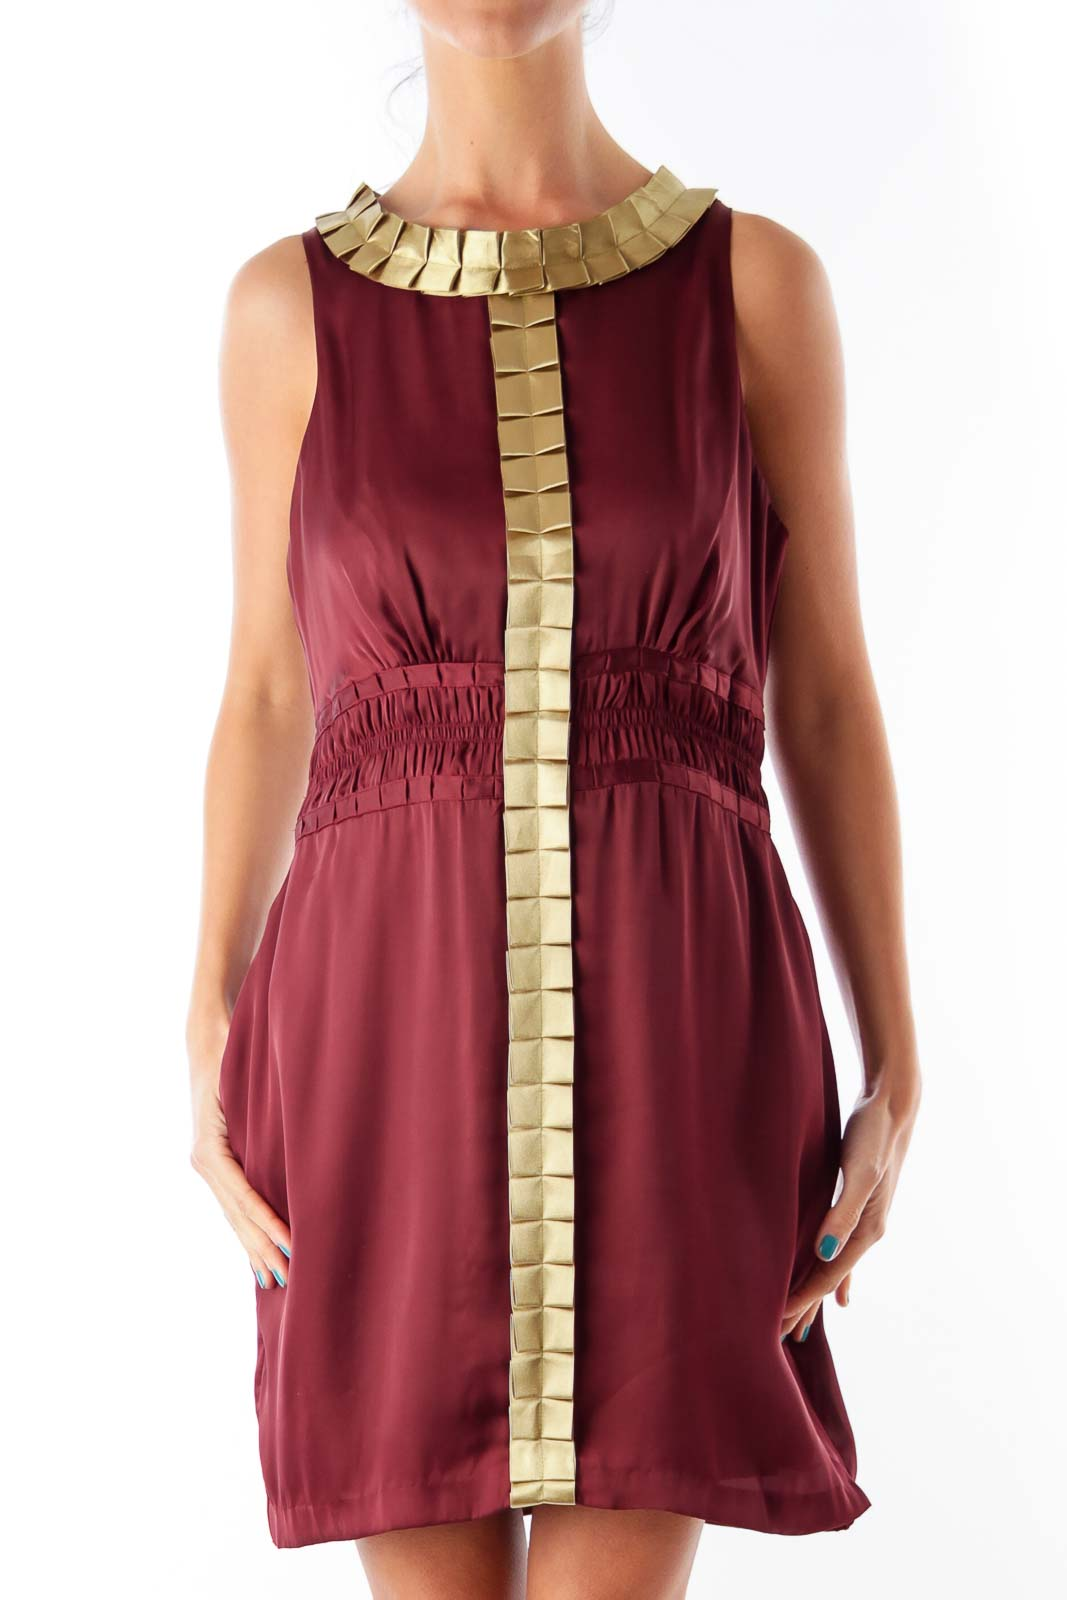 Burgundy & Gold Trim Dress Front